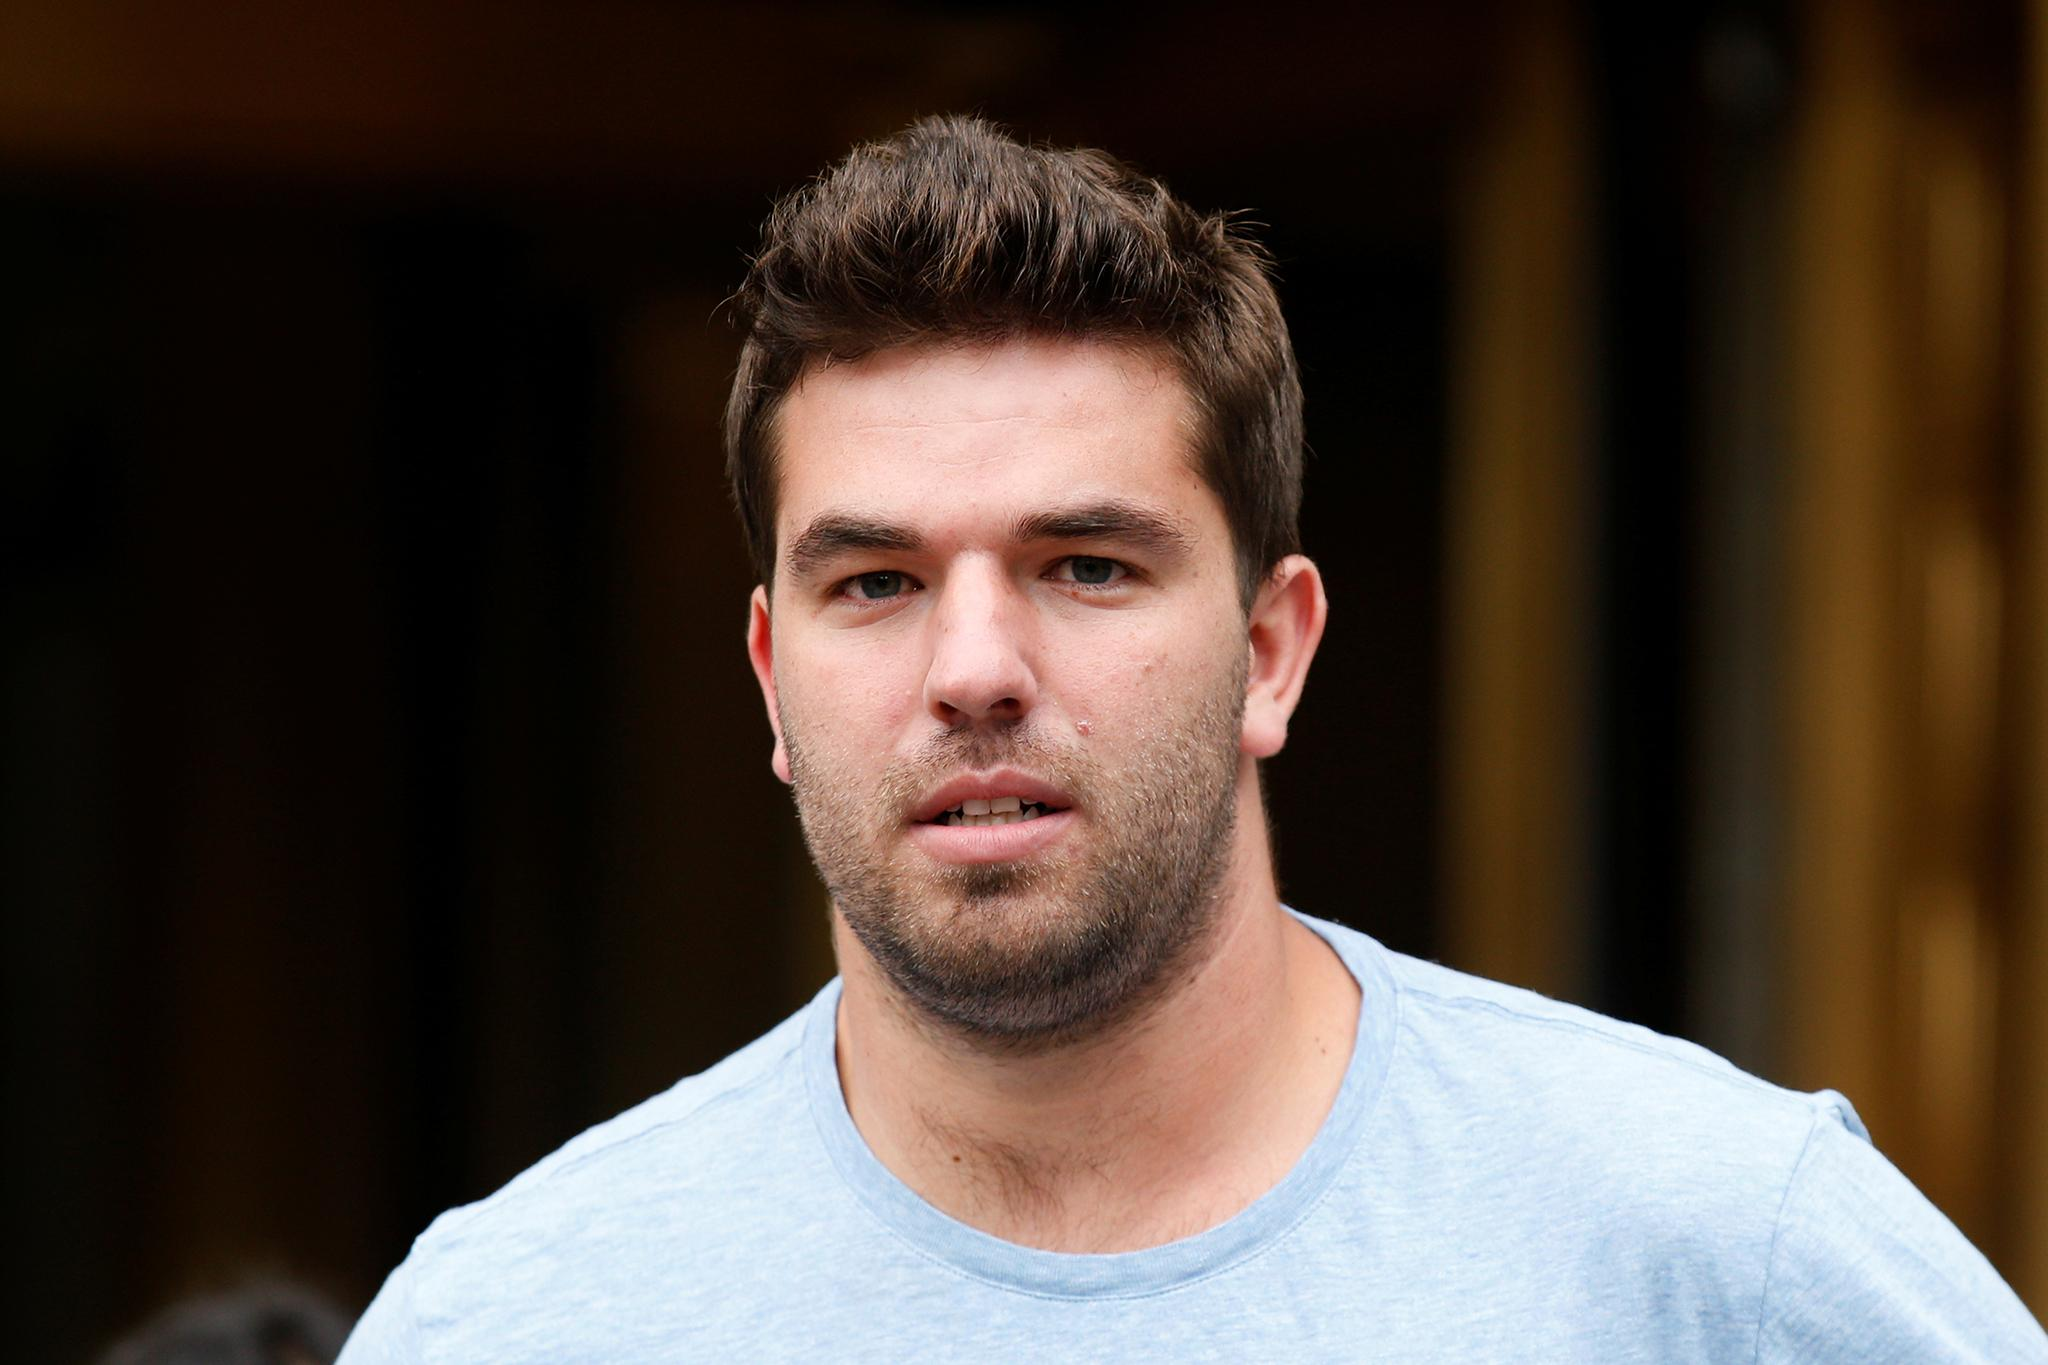 Fyre Festival founder ordered to pay back $26m to investors